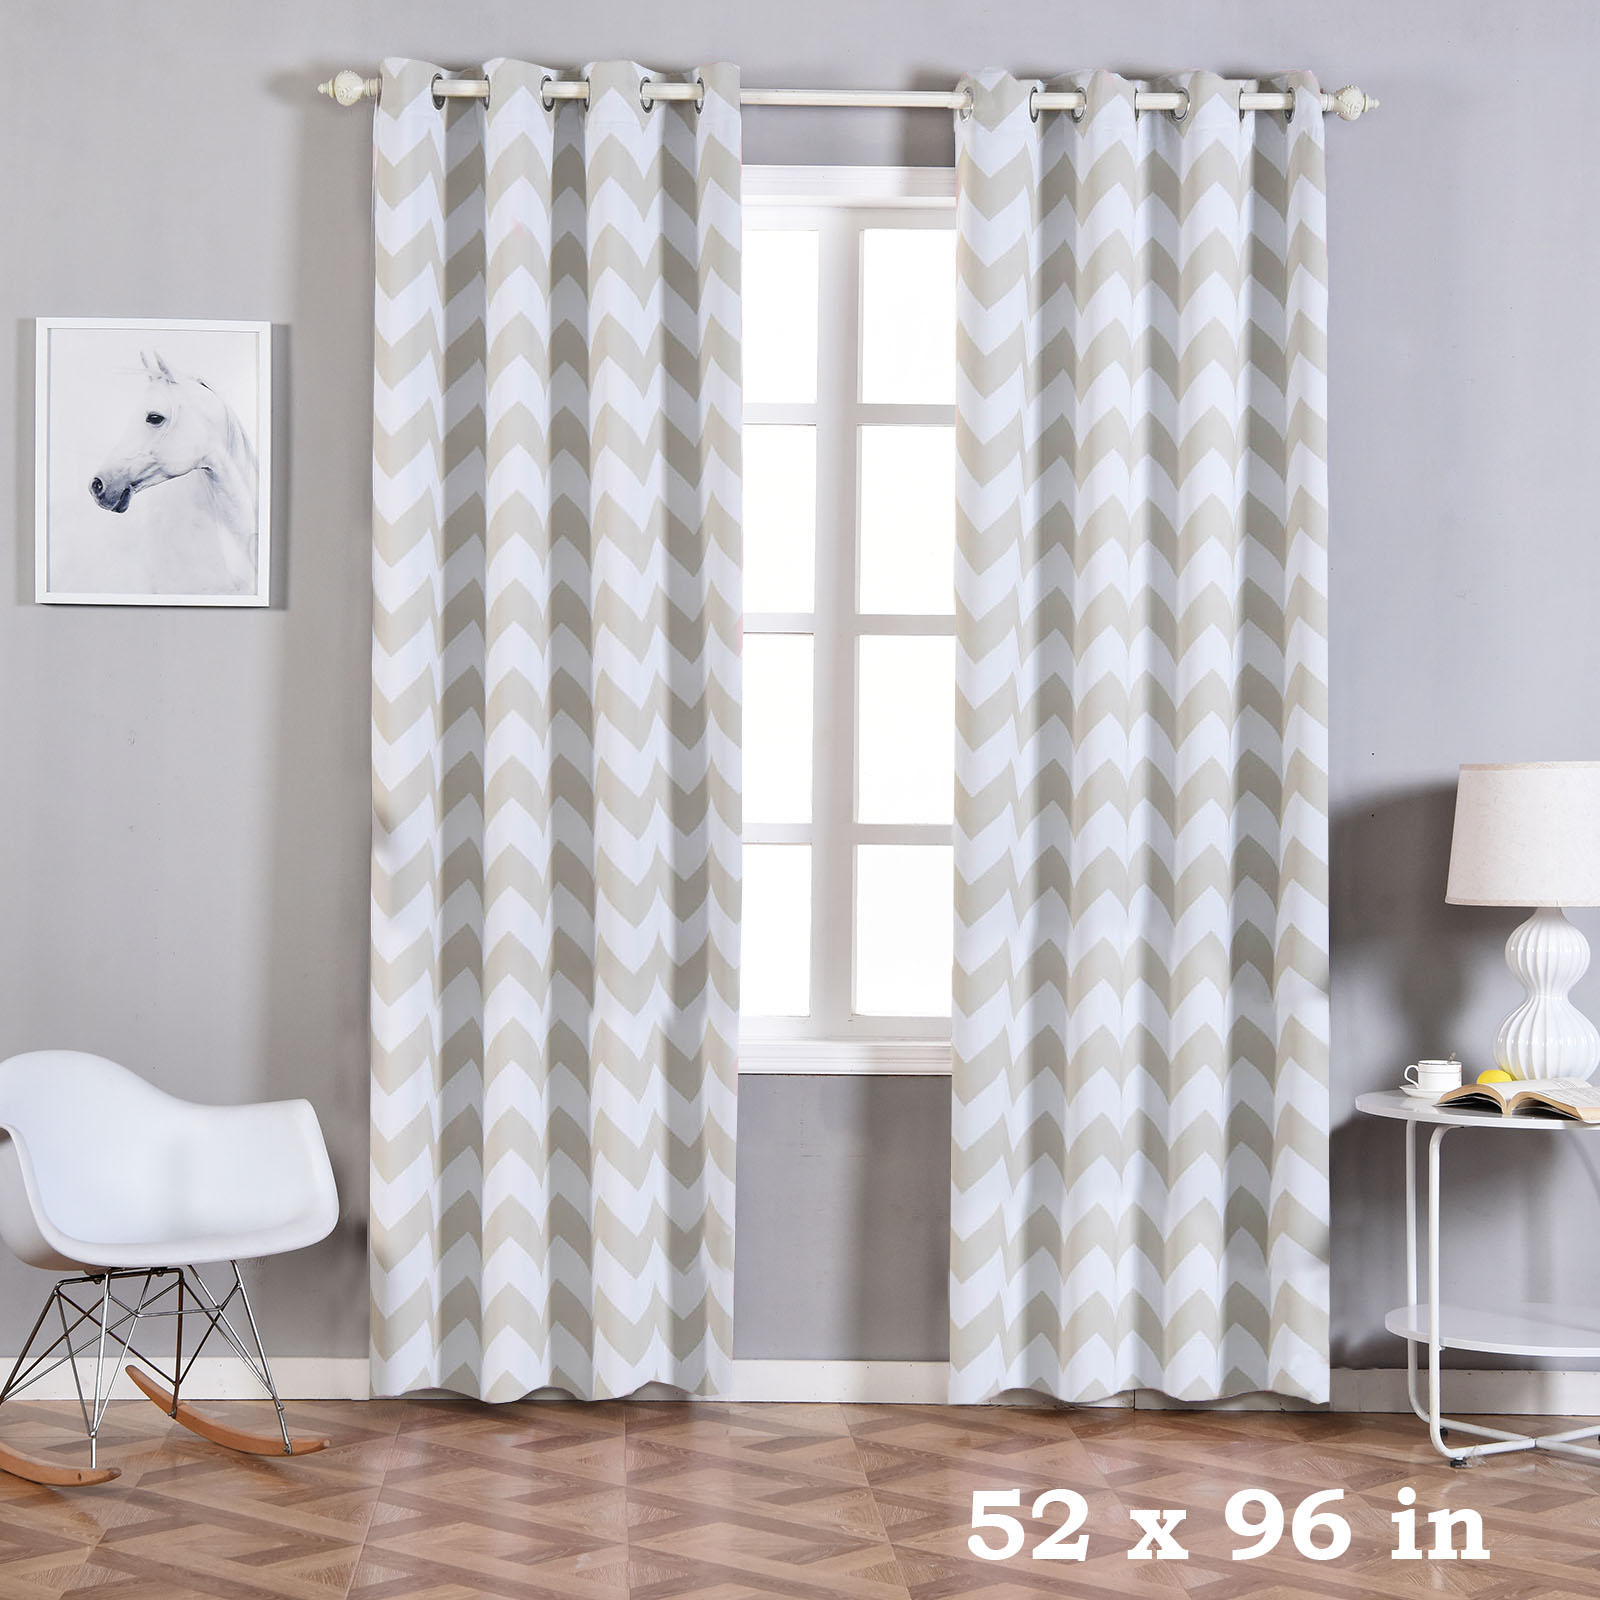 balsacircle 52 x 96 inch chevron curtains drapes panels with grommet window treatments home decorations